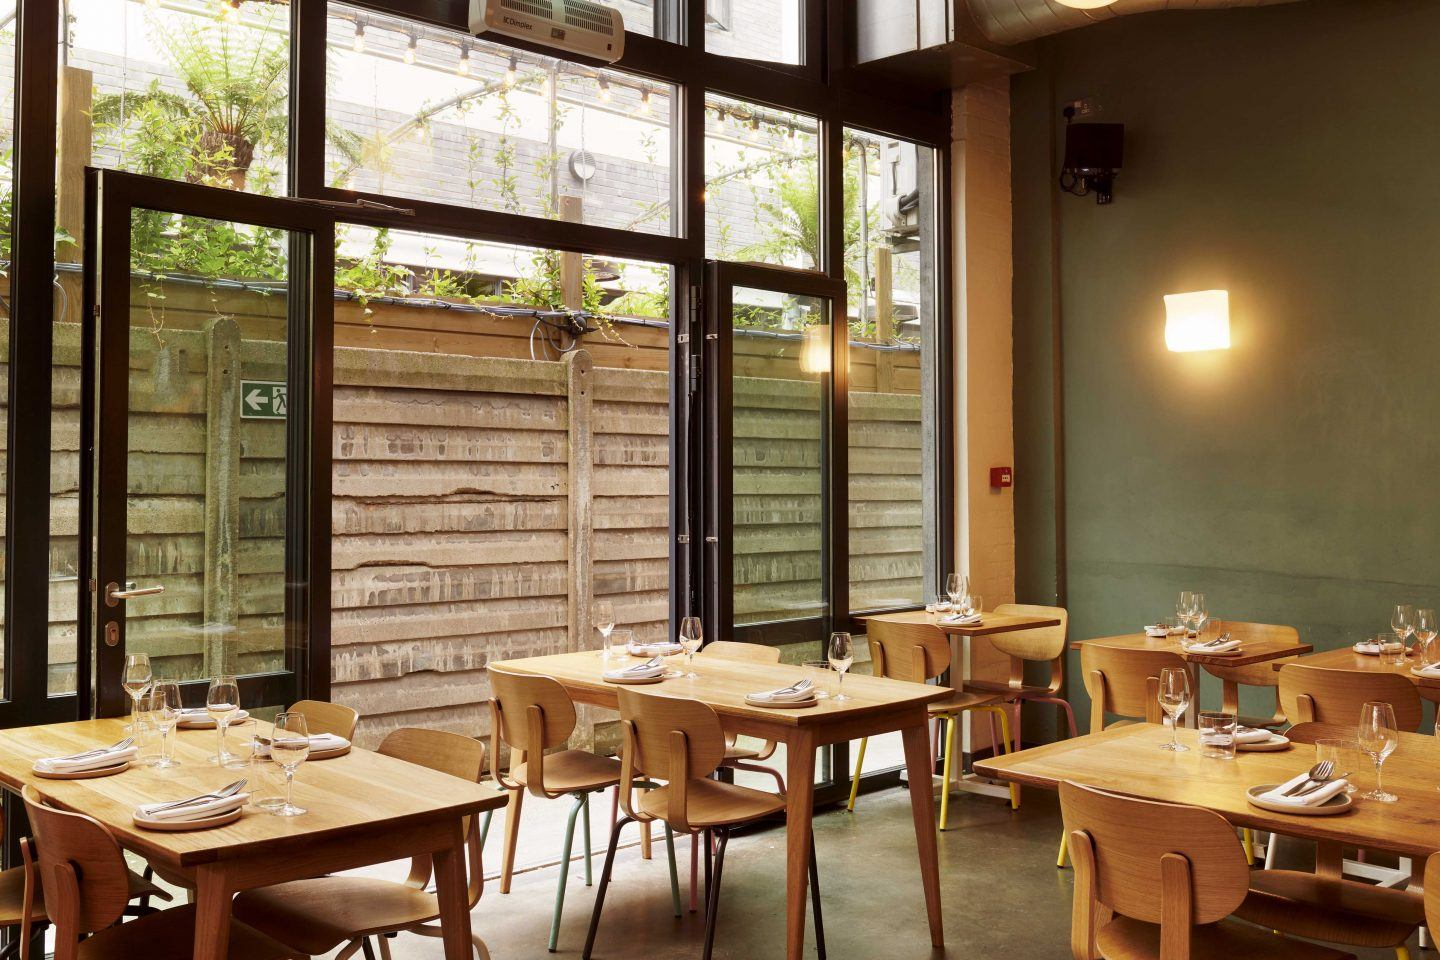 IGNANT-Travel-Bright-Restaurant-London-09